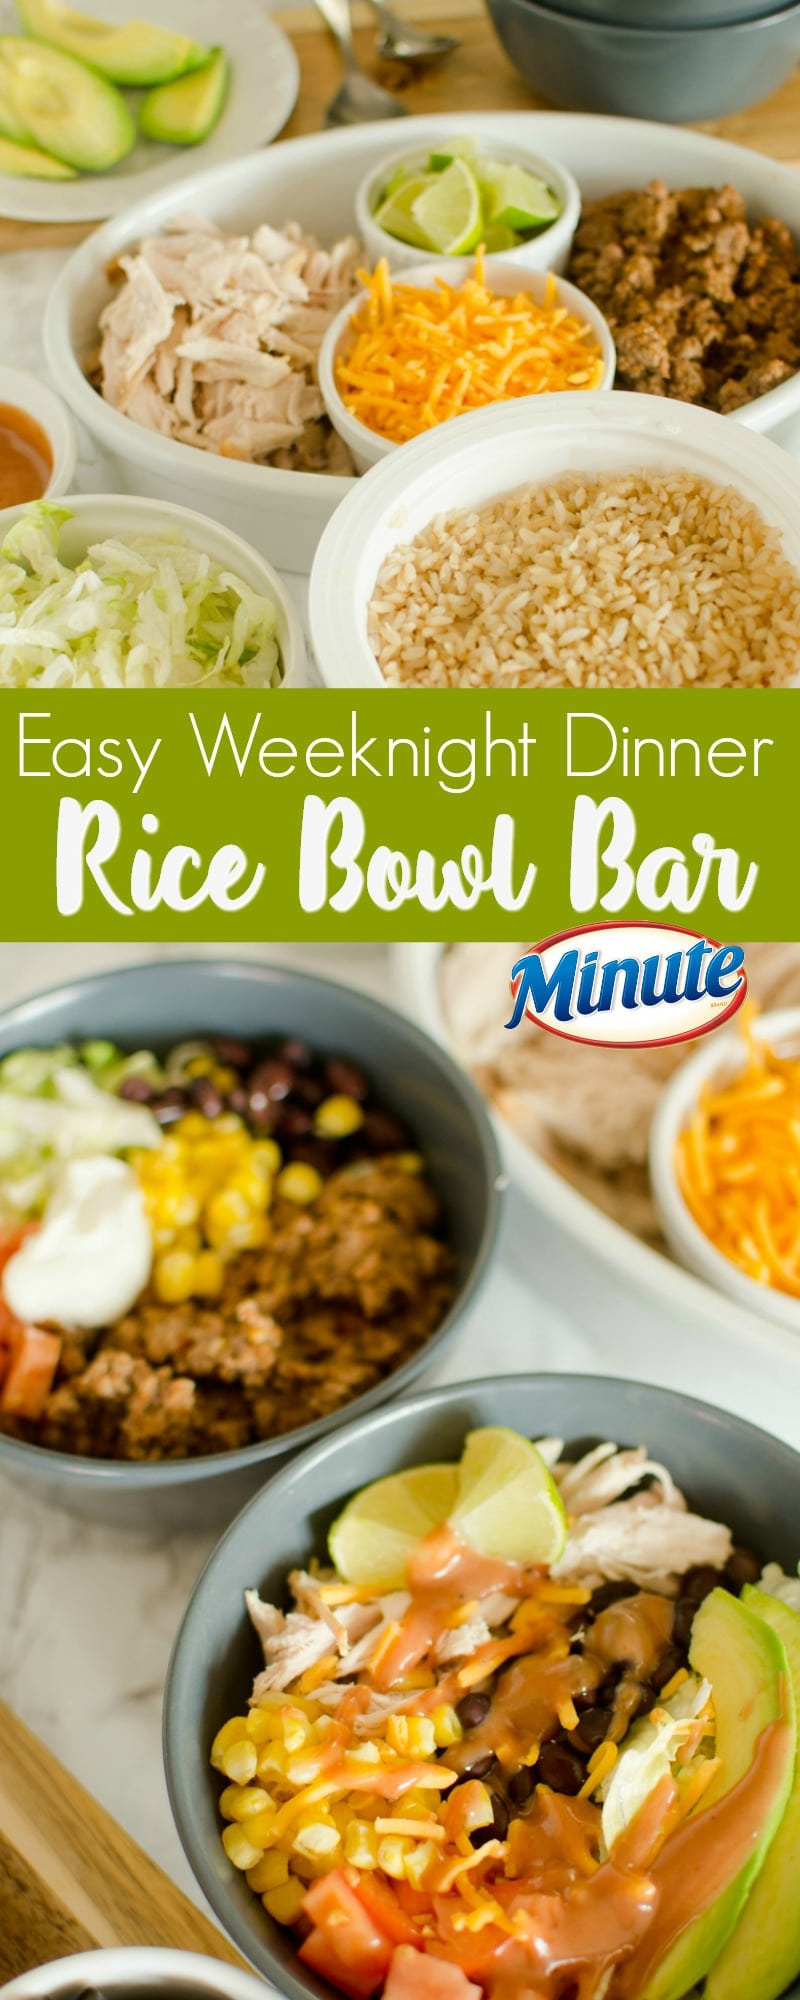 These quick and easy one dish meals are simple enough for weeknight dinners and special enough for guests. Put your dutch oven, cast iron skillet, and other .